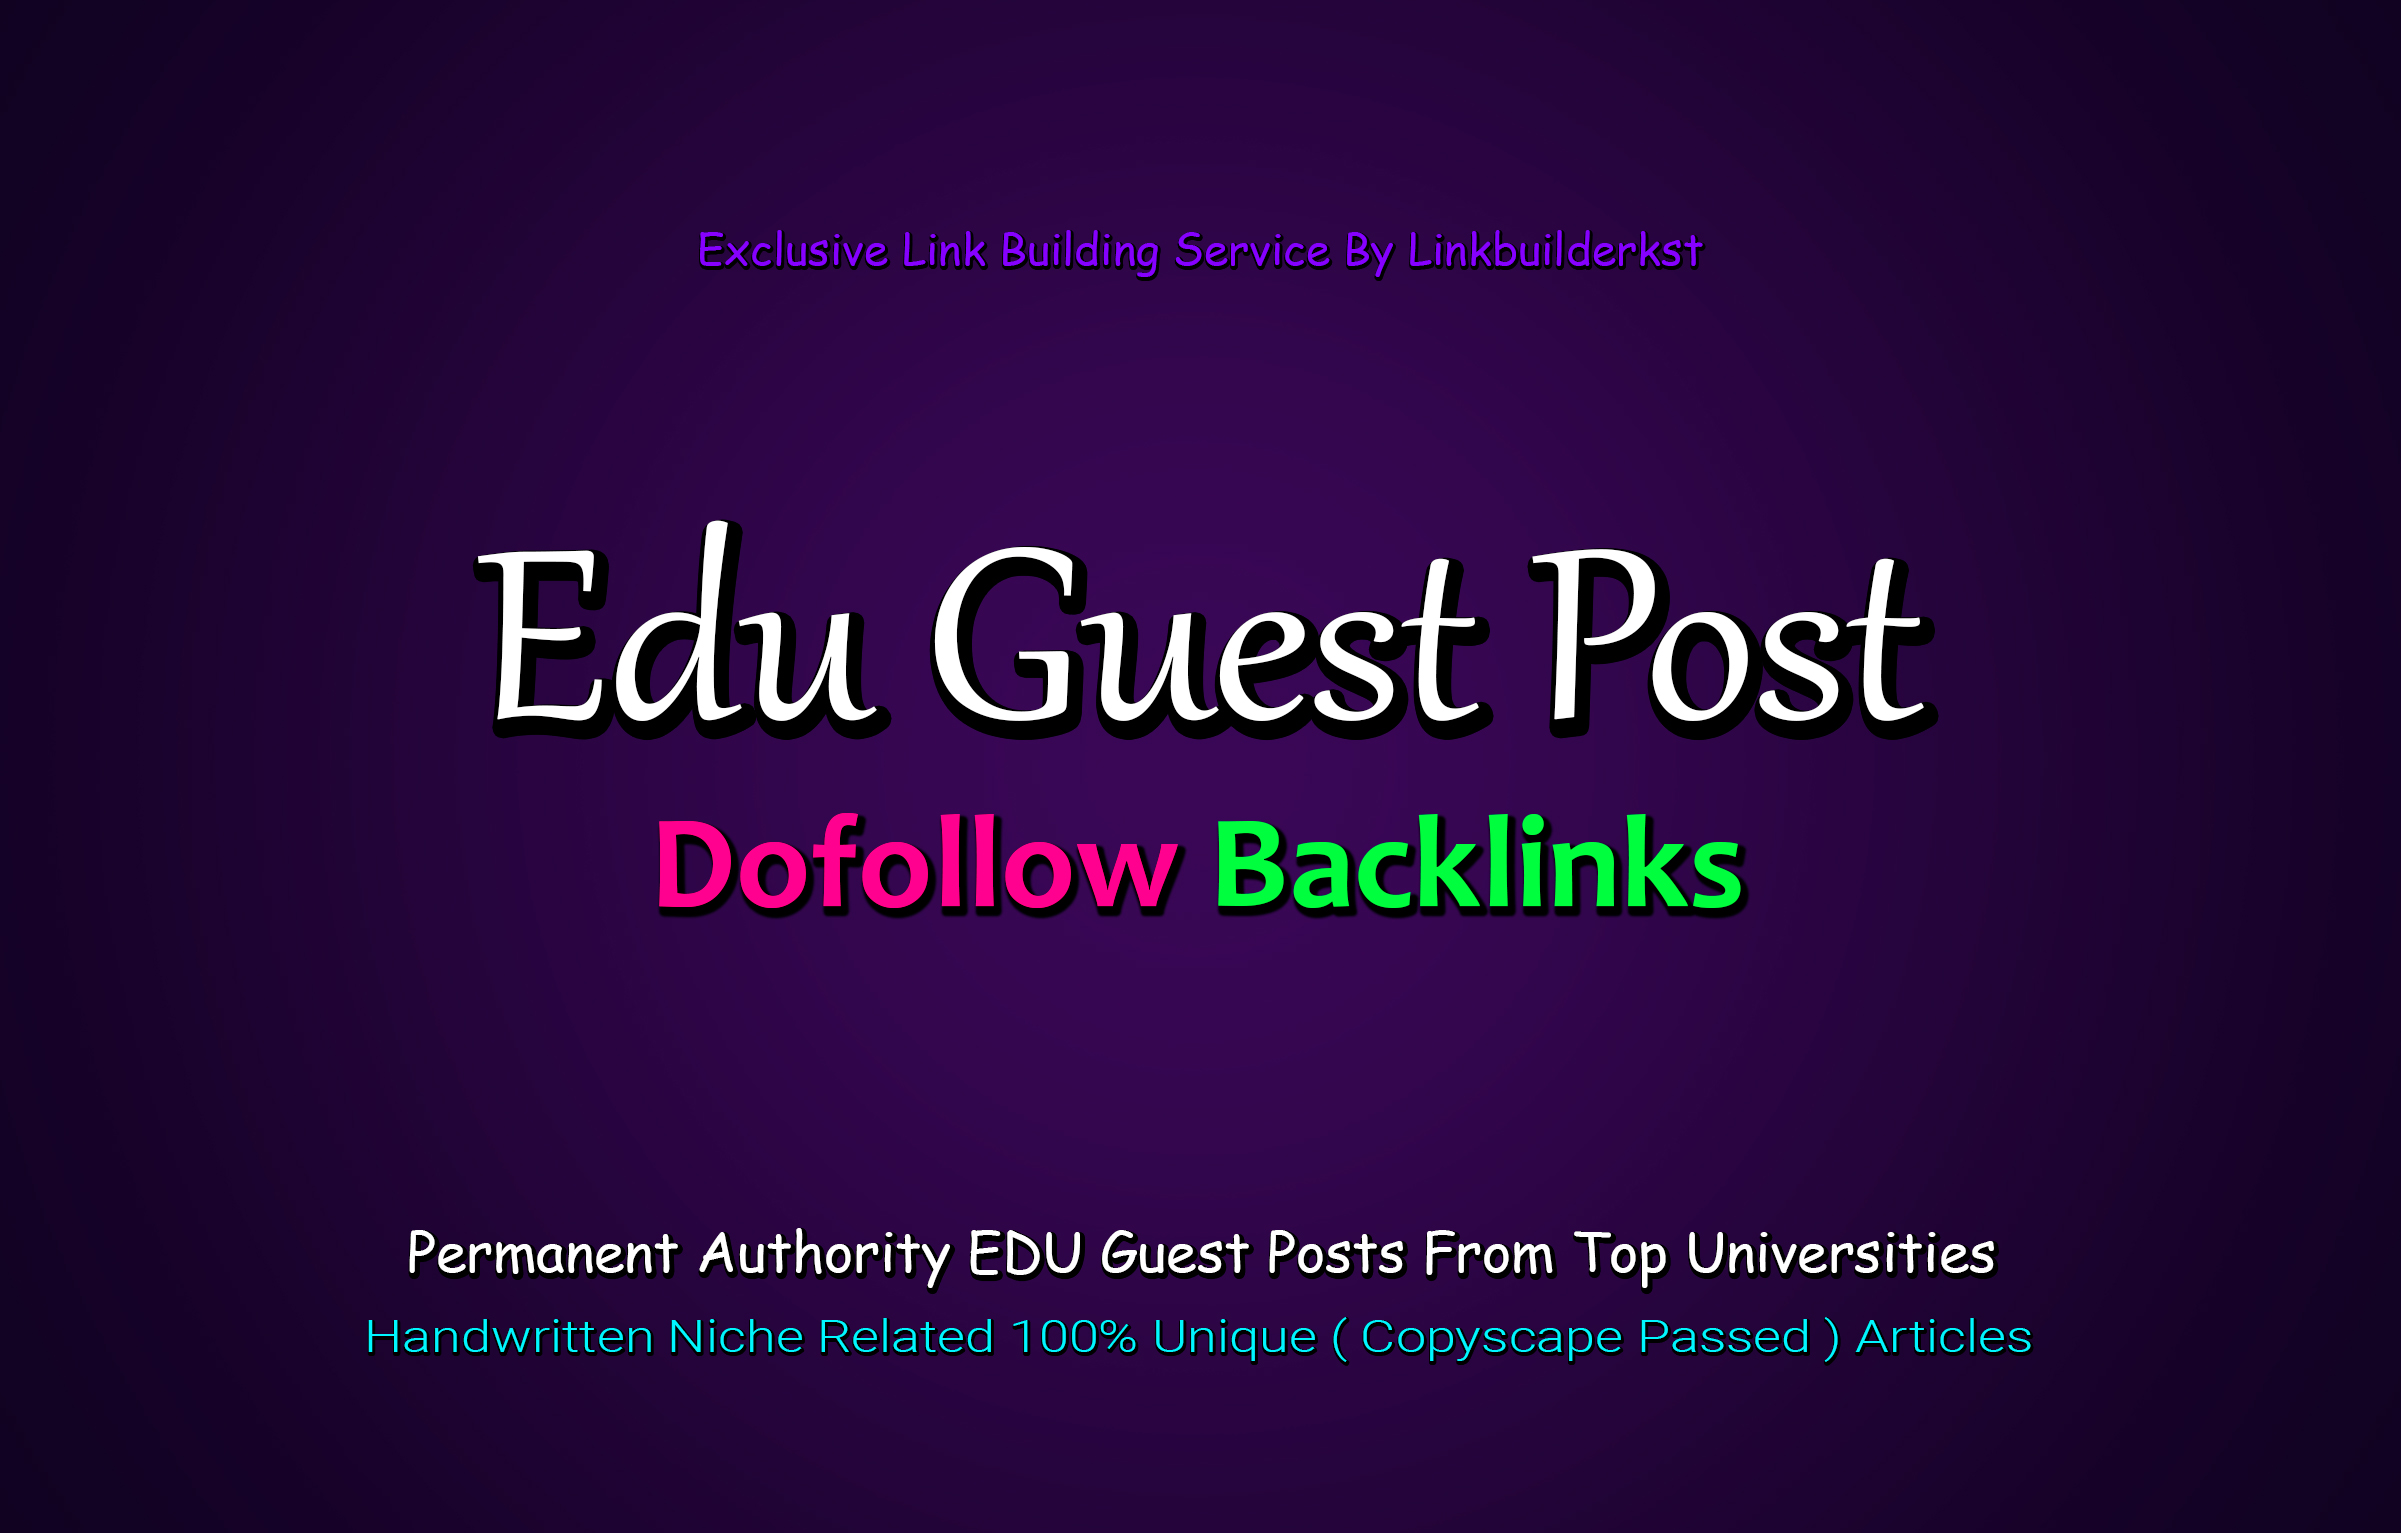 Limited Time Offer - 3X EDU Guest Posts From The Top Universities